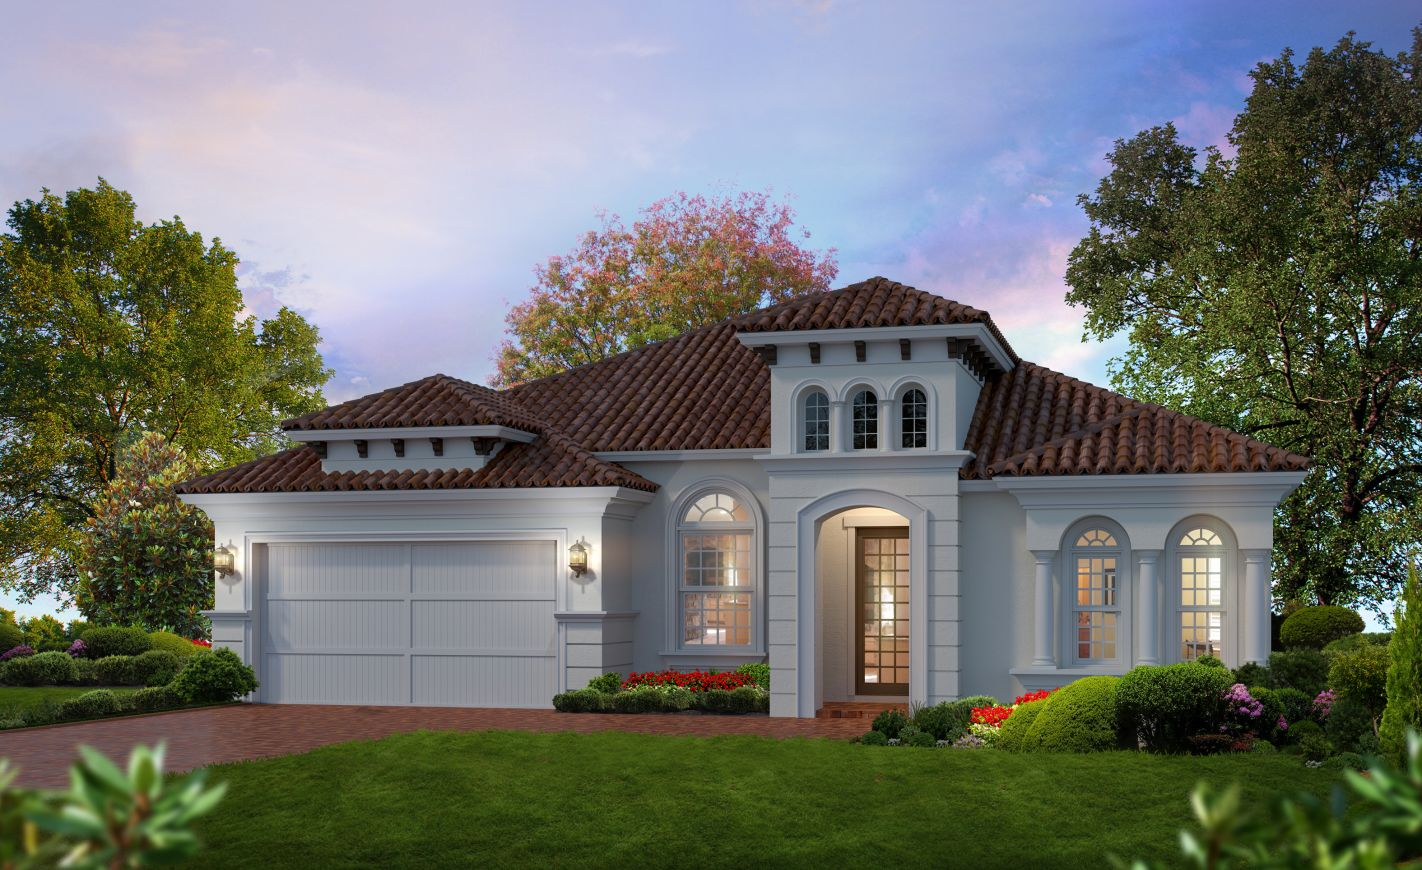 Palm Coast Homes for Sale - The Costa Mesa at The Conservatory